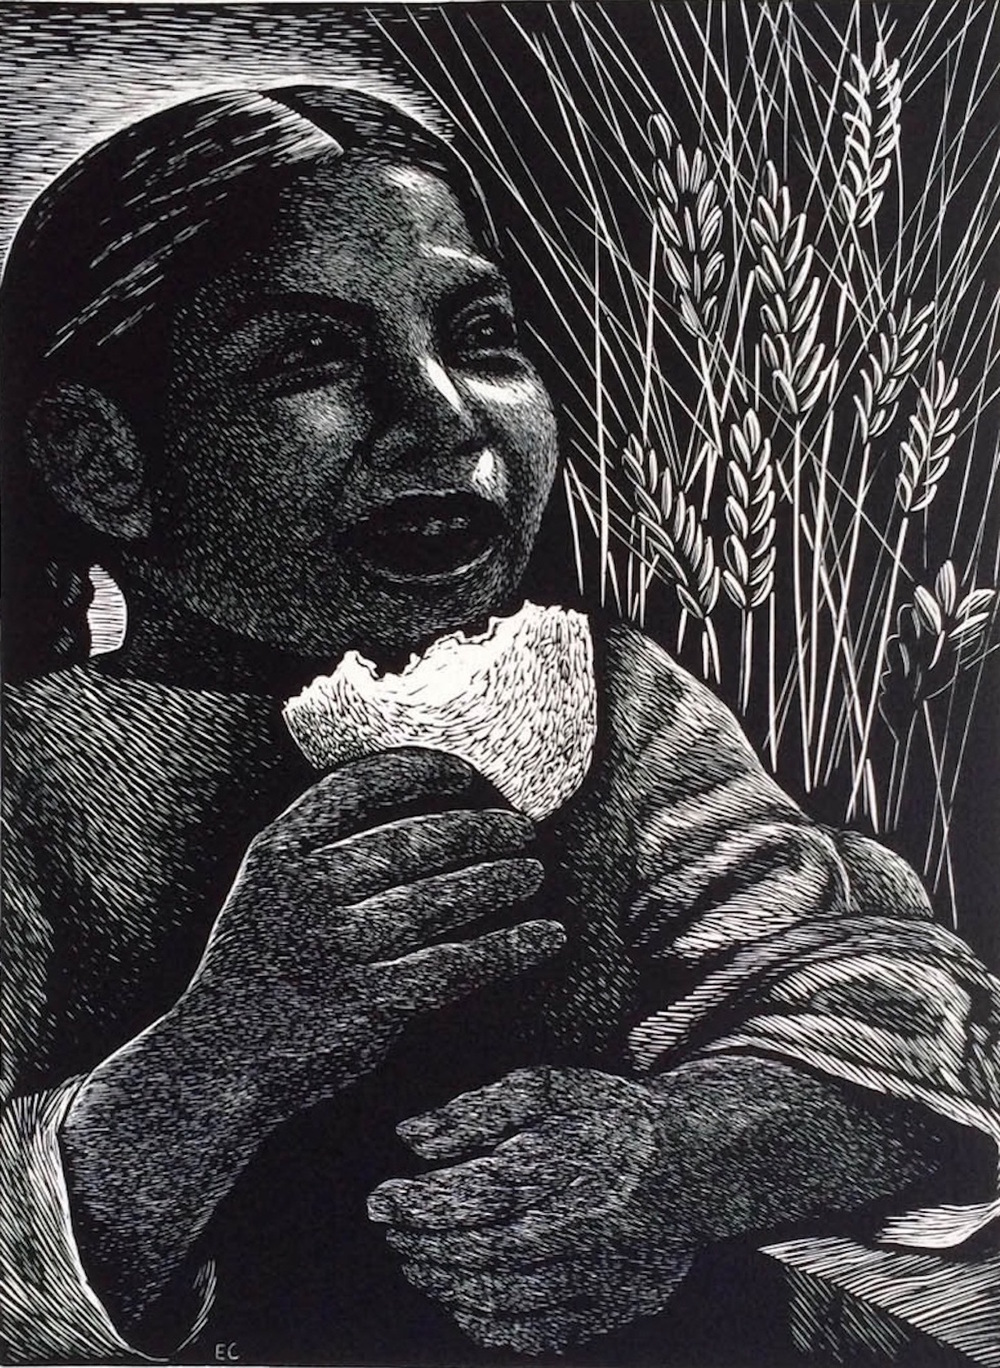 Elizabeth Catlett, Bread for All 1954 Art © Catlett Mora Family Trust/Licensed by VAGA, New York, NY